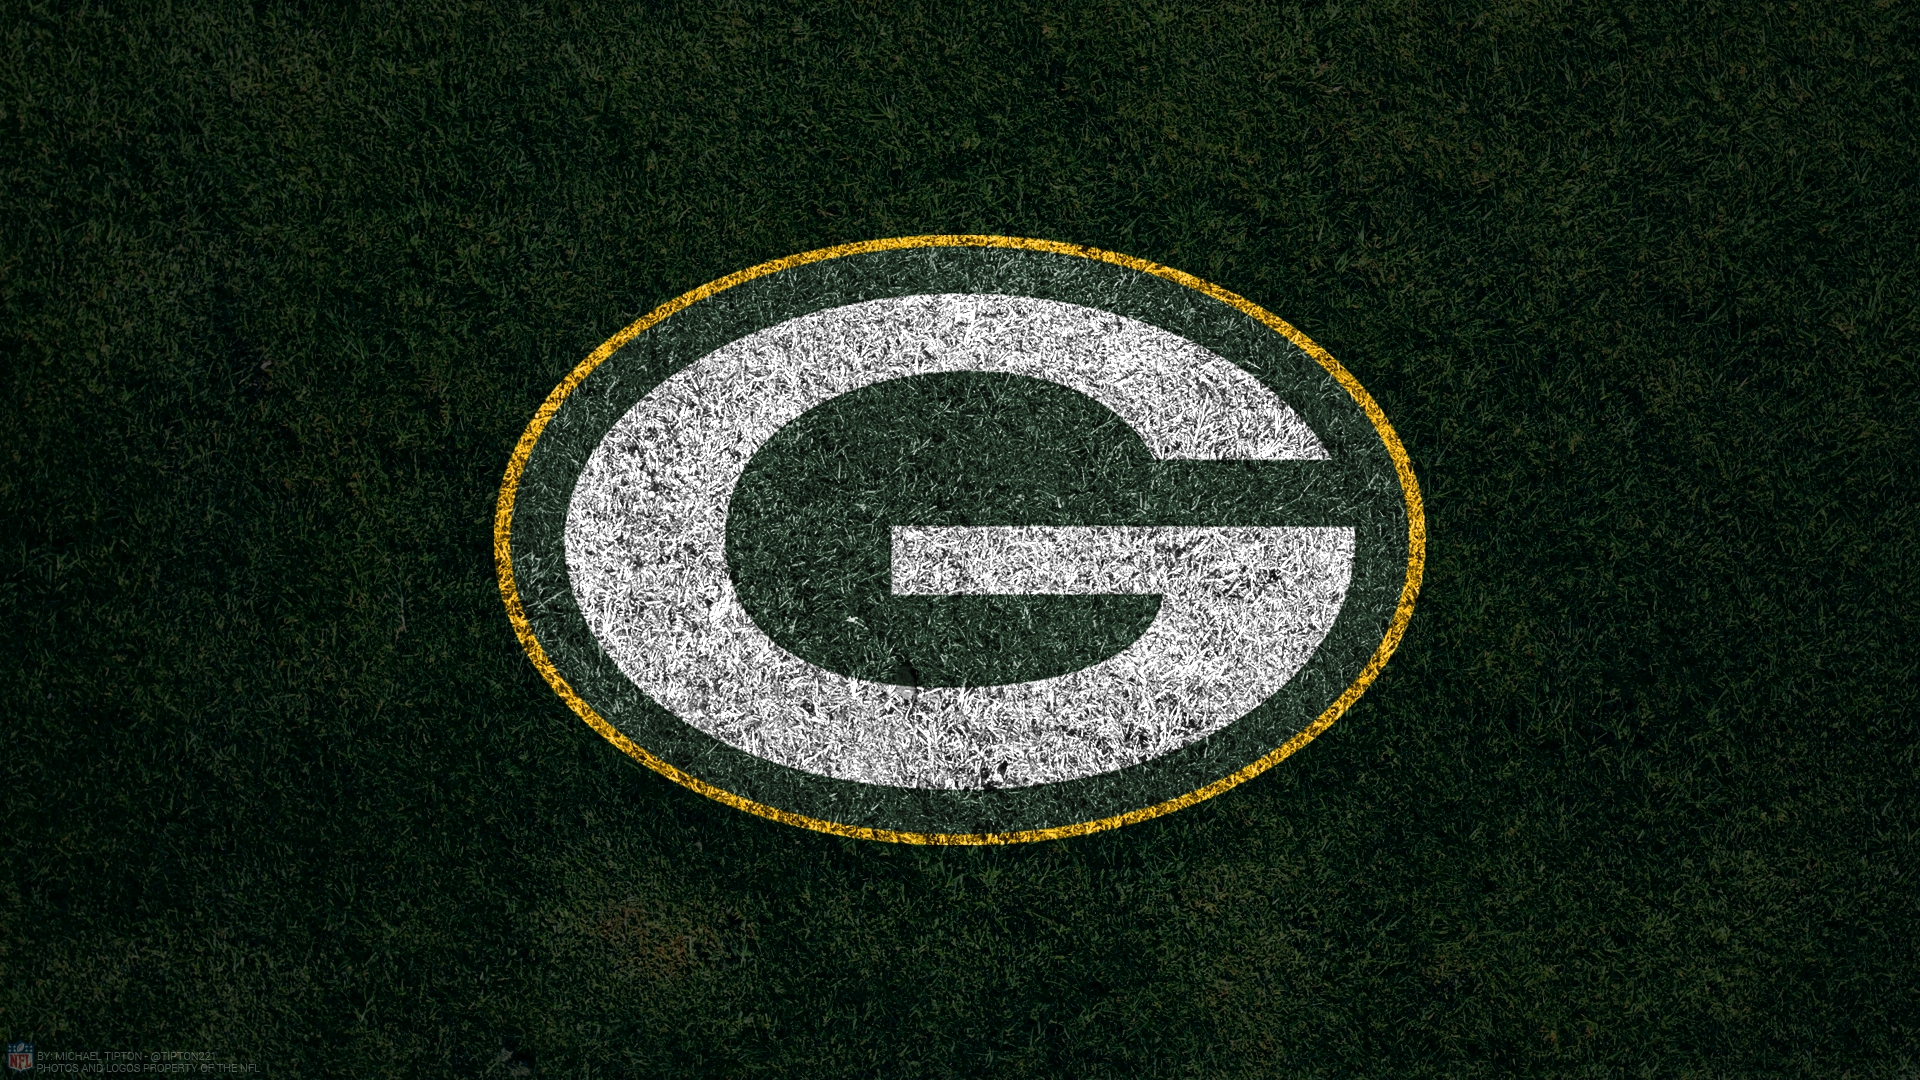 green bay packers images sick packers wallpaper hd wallpaper and